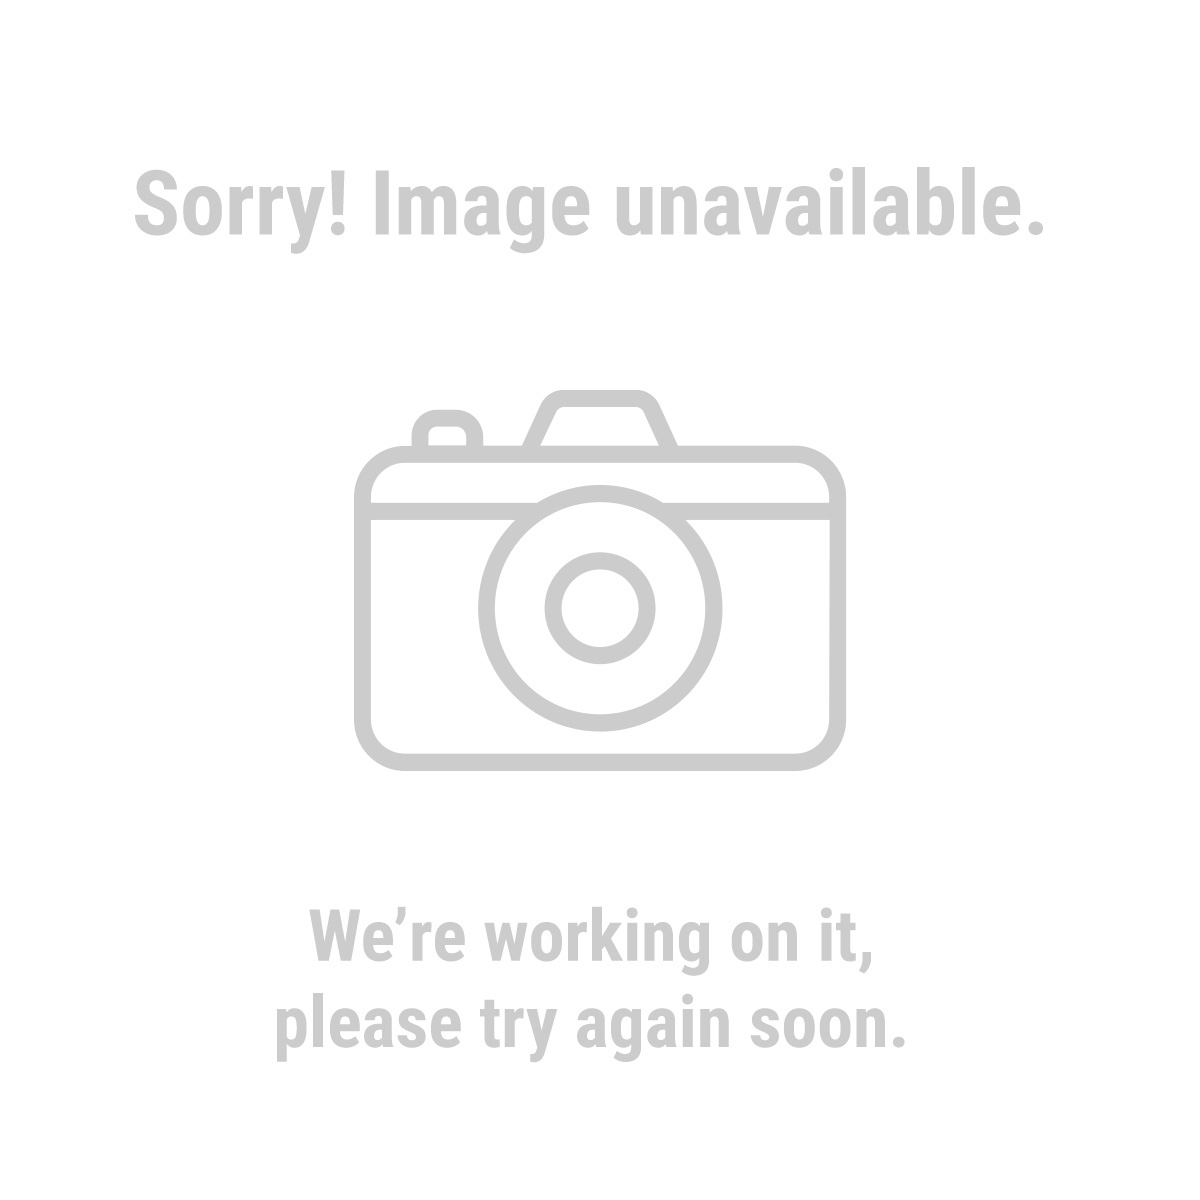 Pittsburgh 94779 34 Piece Ratcheting Screwdriver Set